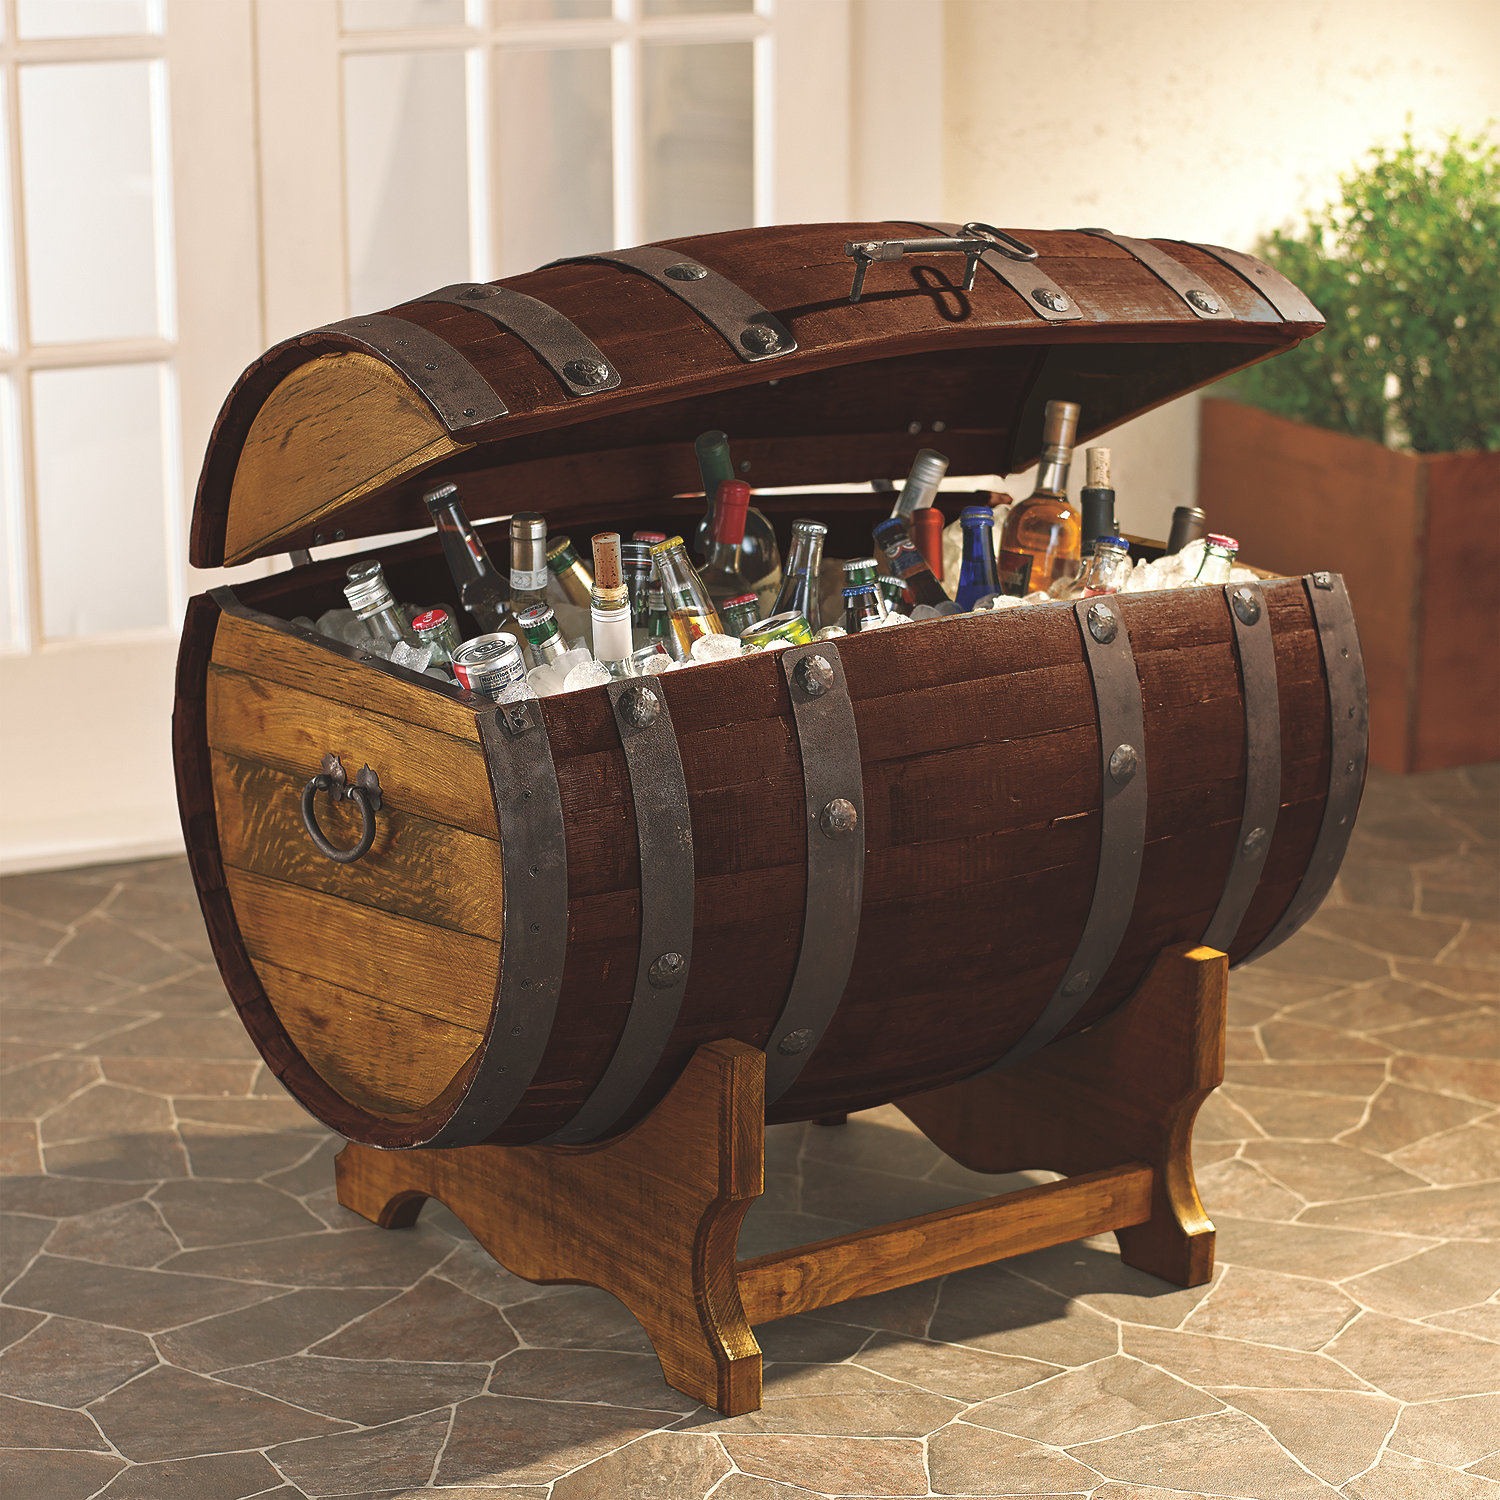 Cool Reclaimed Tequila Barrel Ice Chest and Stand (Large) wine barrel furniture